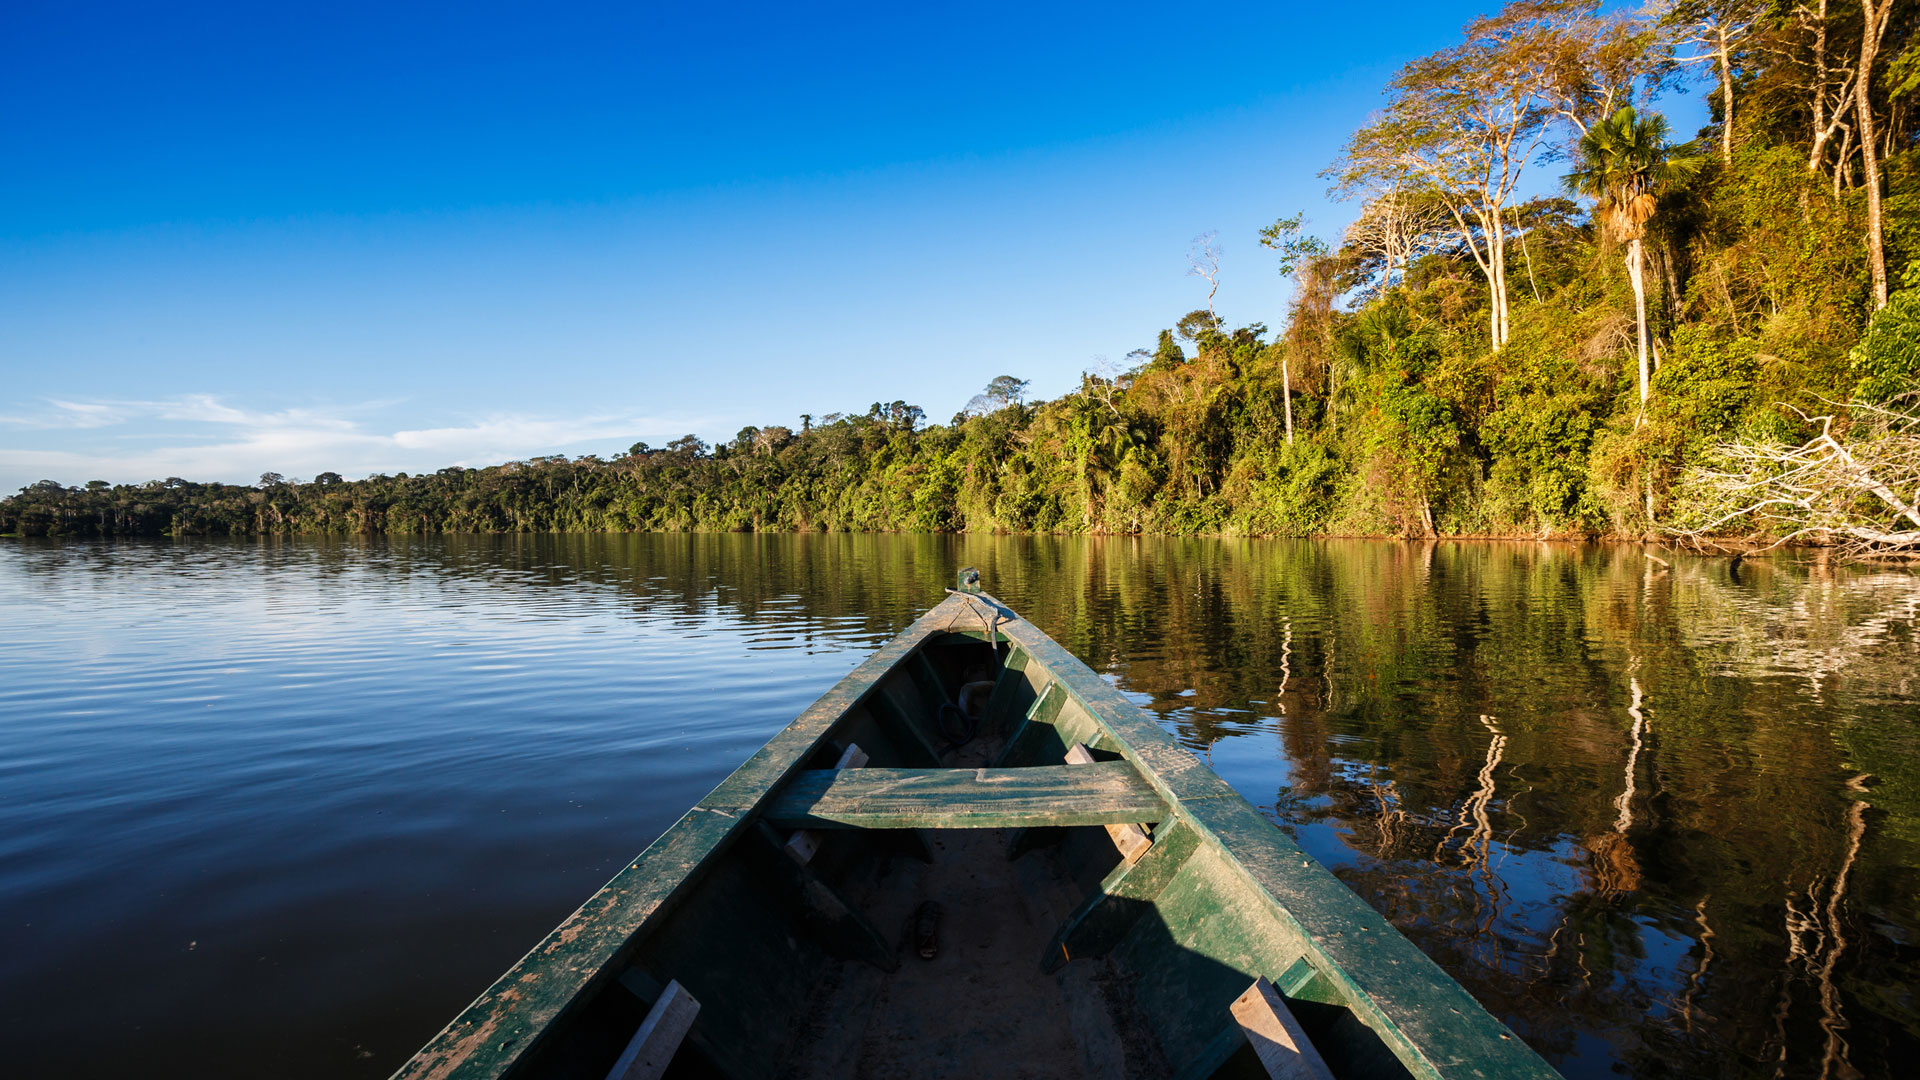 Exploring the Amazon, Peru